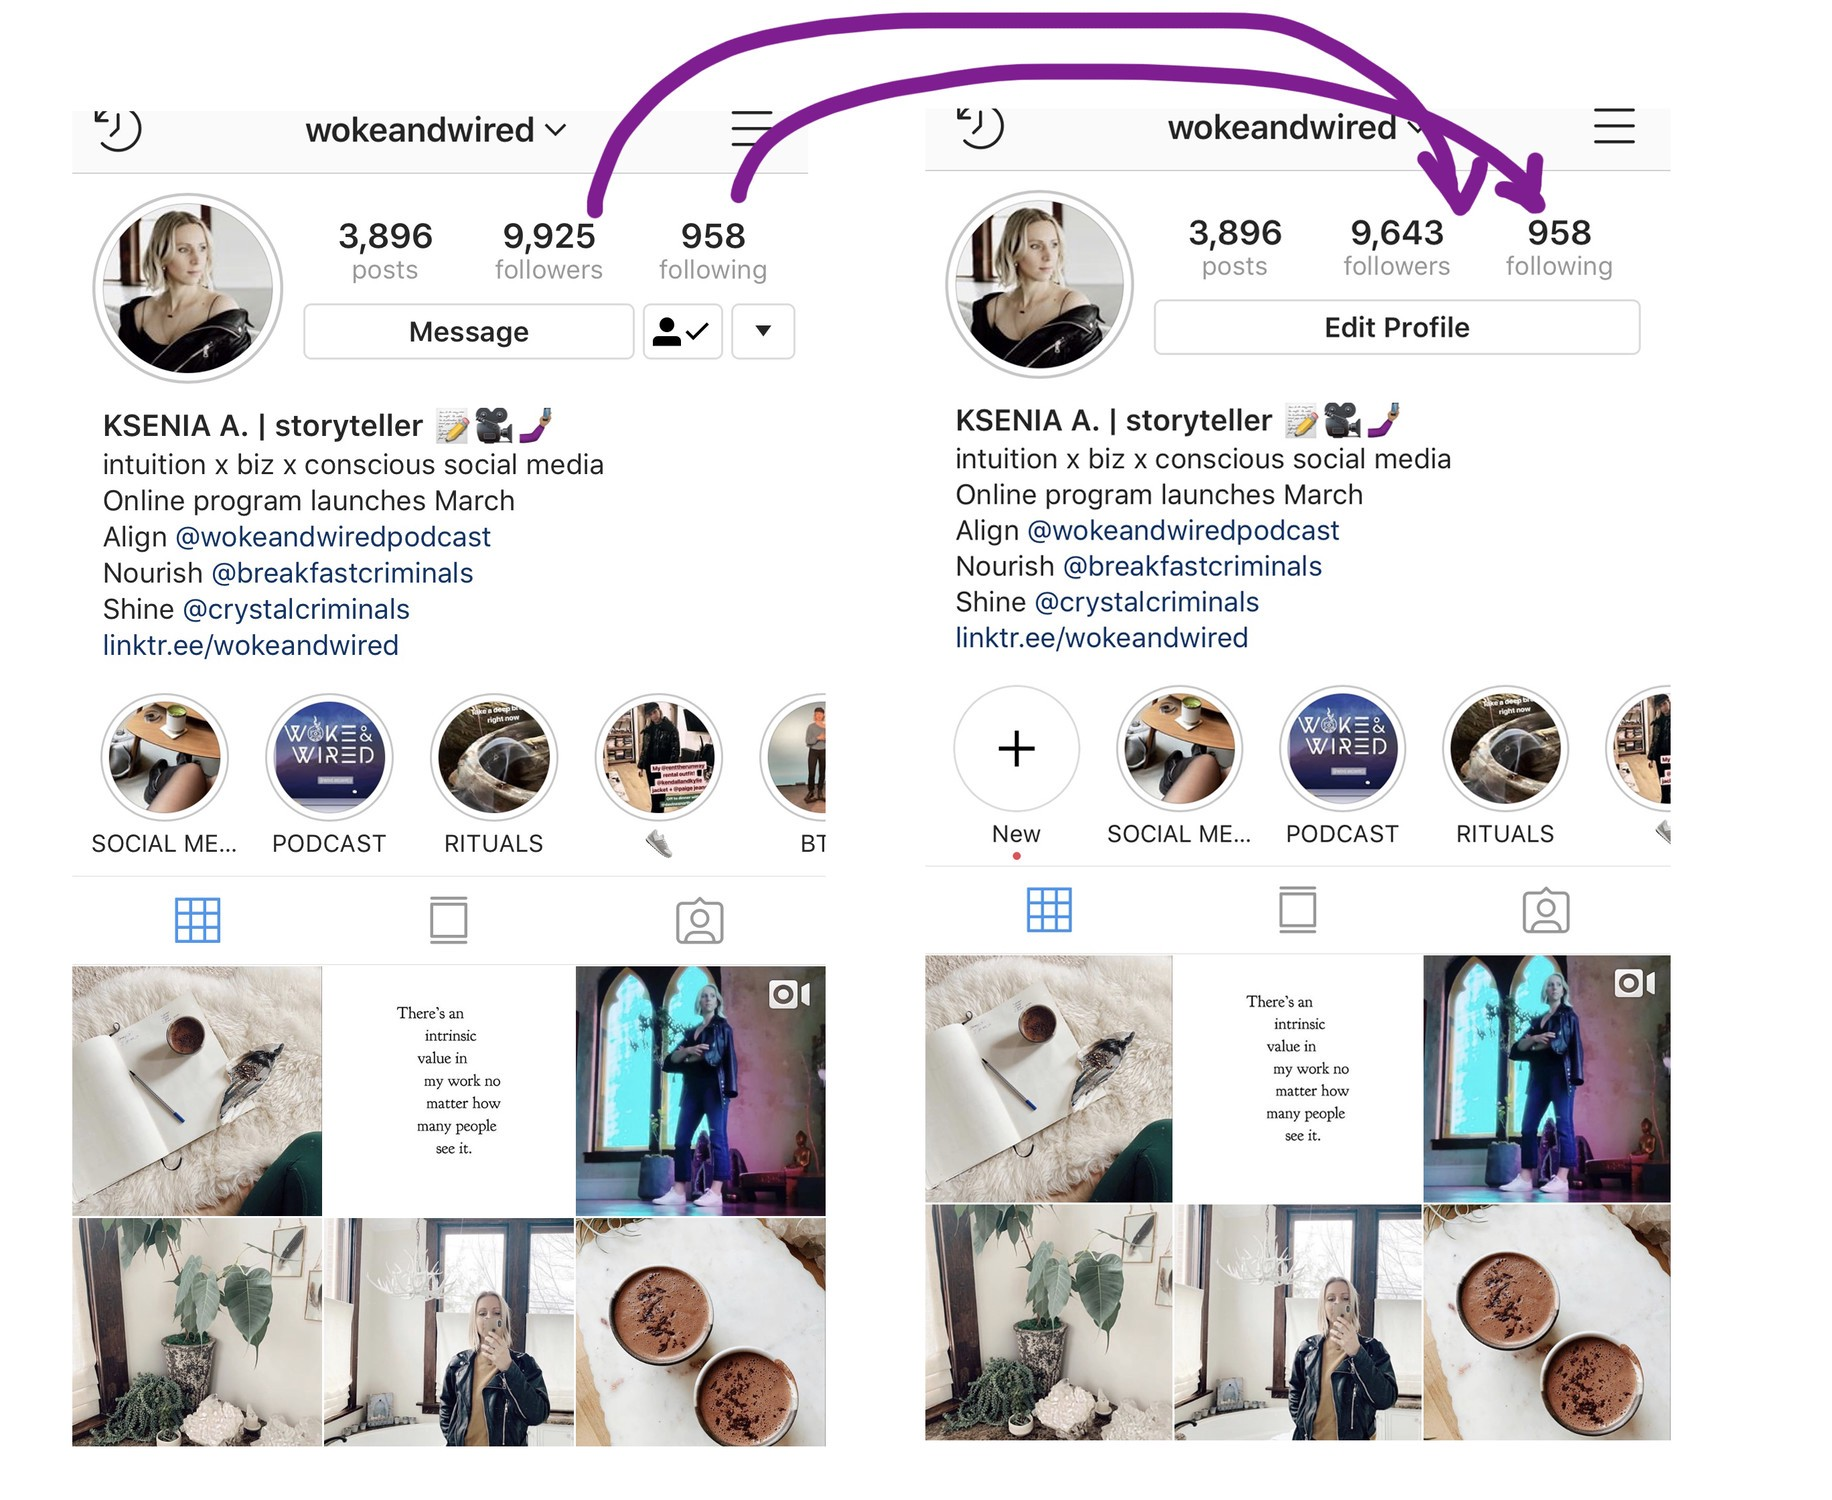 lost followers instagram app how much are instagram followers worth Lost Followers On Instagram Here S Why It S A Good Thing By Ksenia Avdulova Wokeandwired Medium